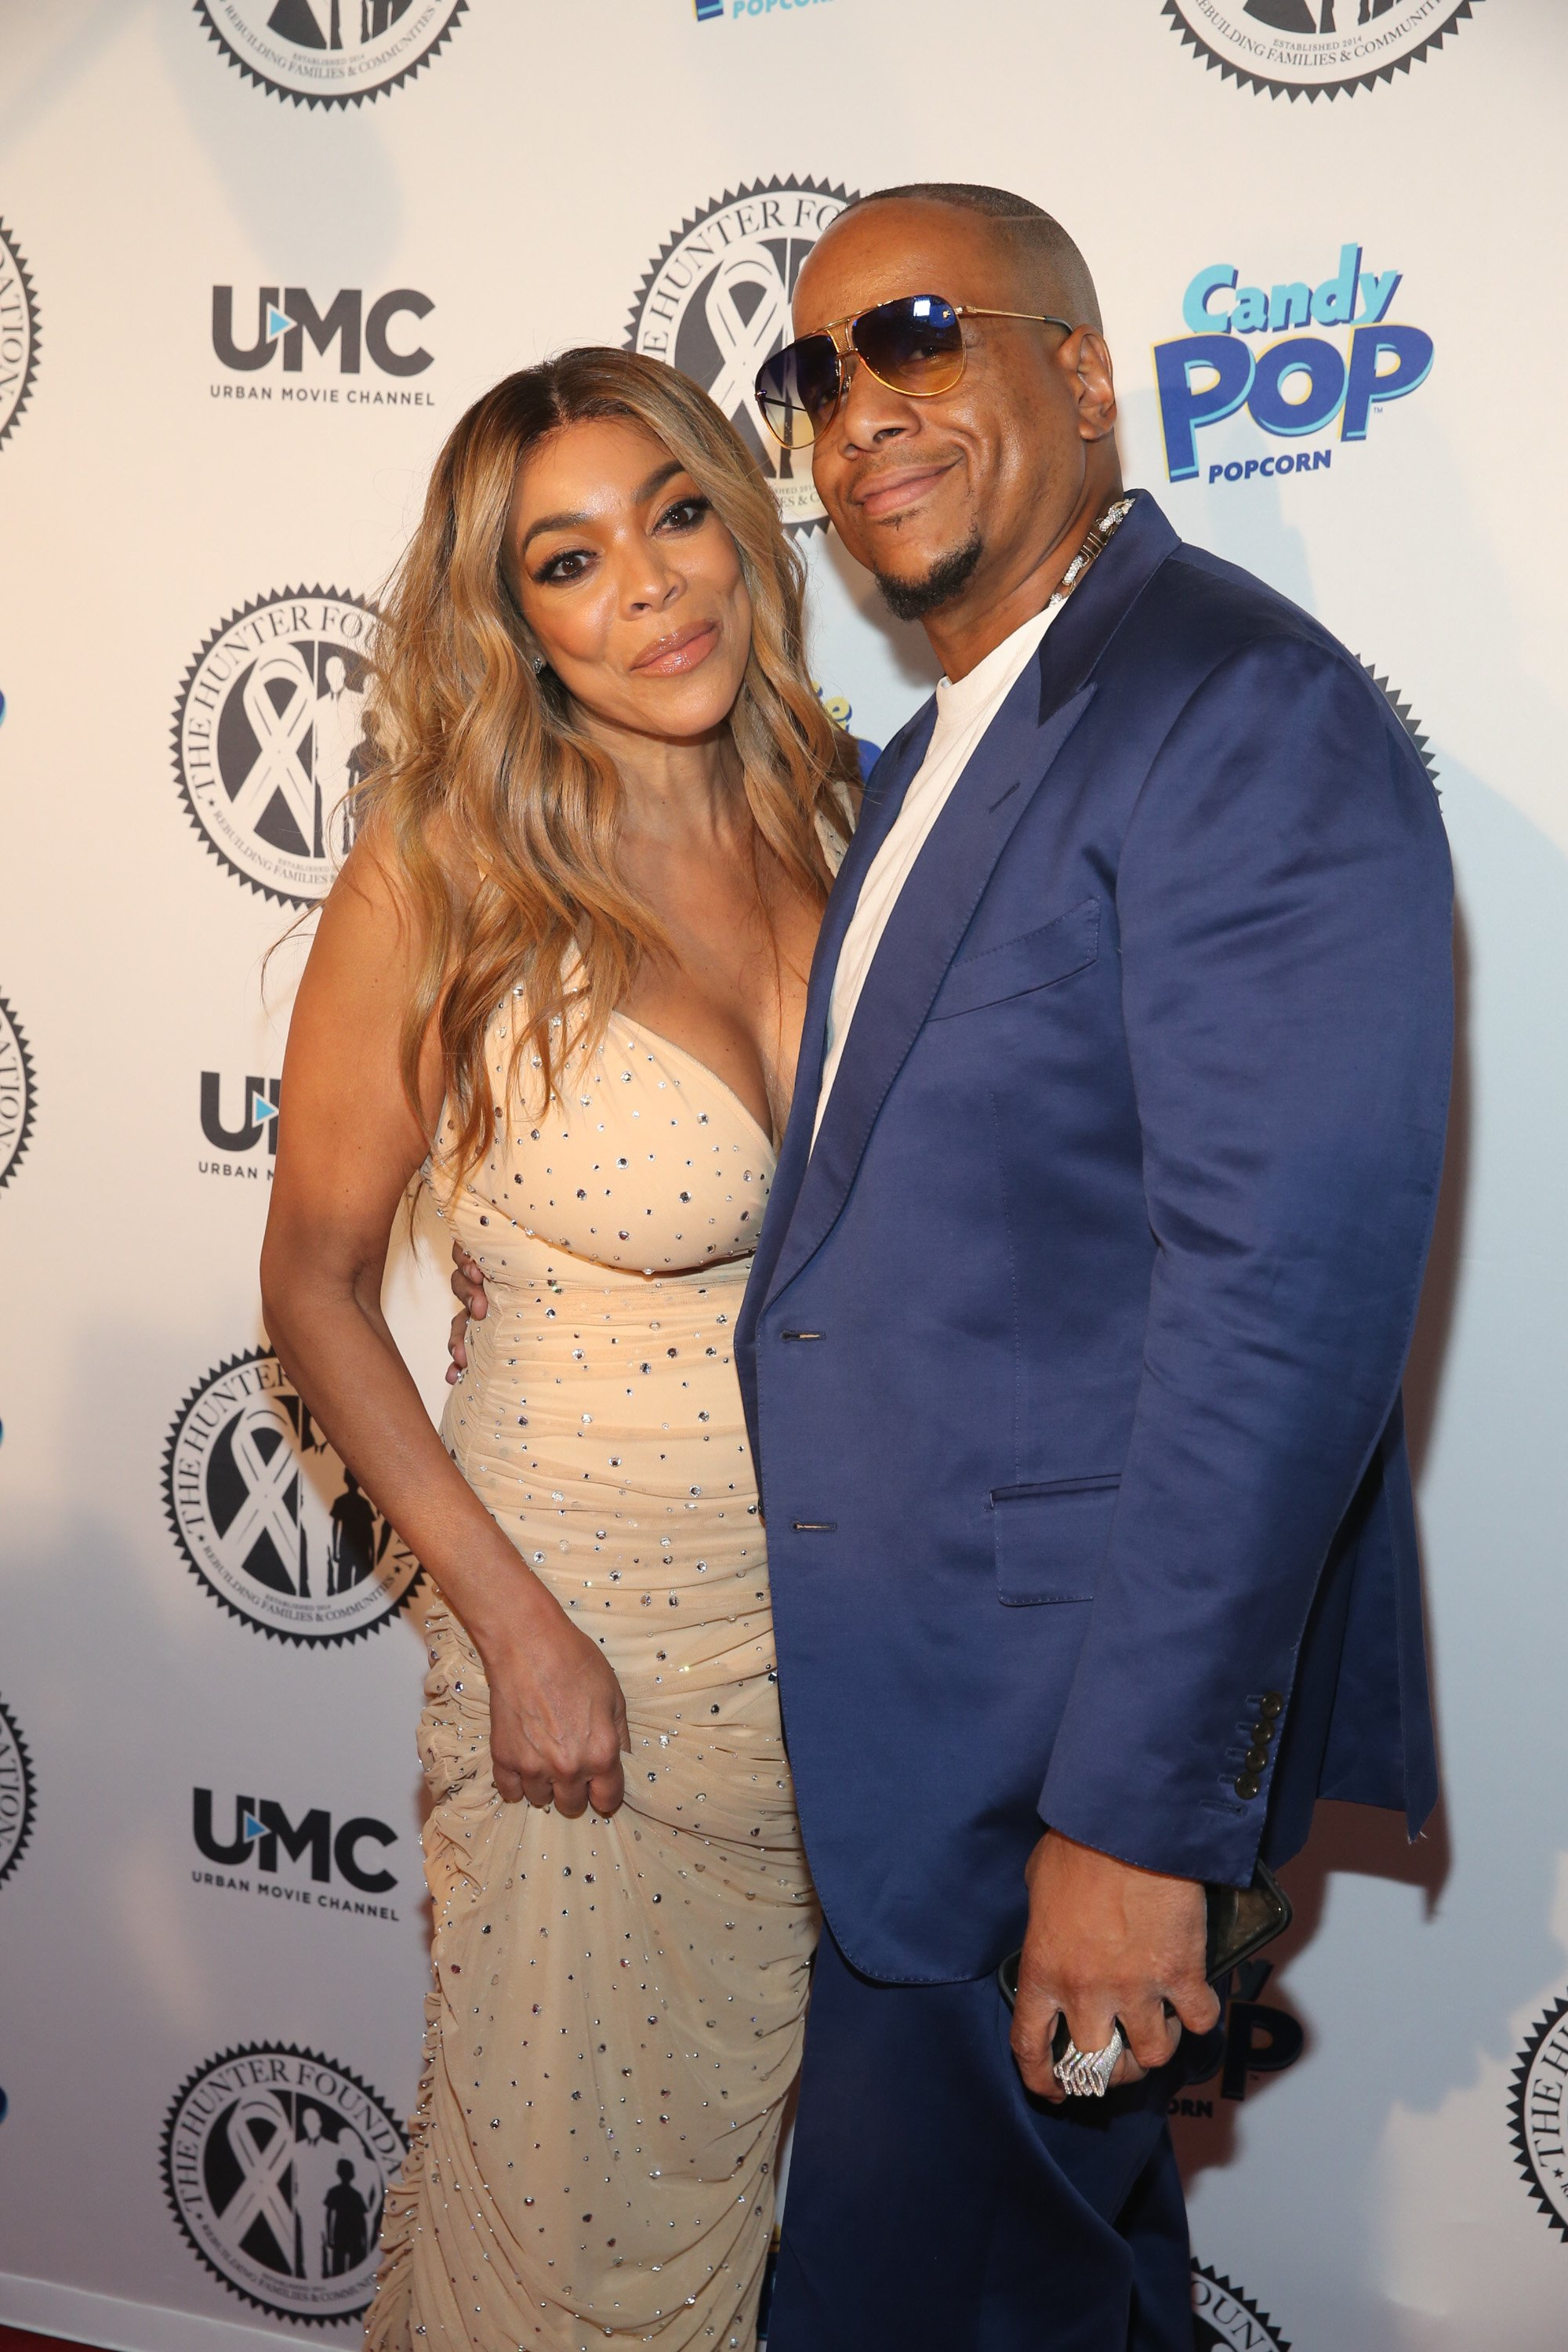 Wendy Williams and Kevin Hunter at The Hunter Foundation gala on July 18, 2018 at the Hammerstein Ballroom in New York.   Source: Getty Images